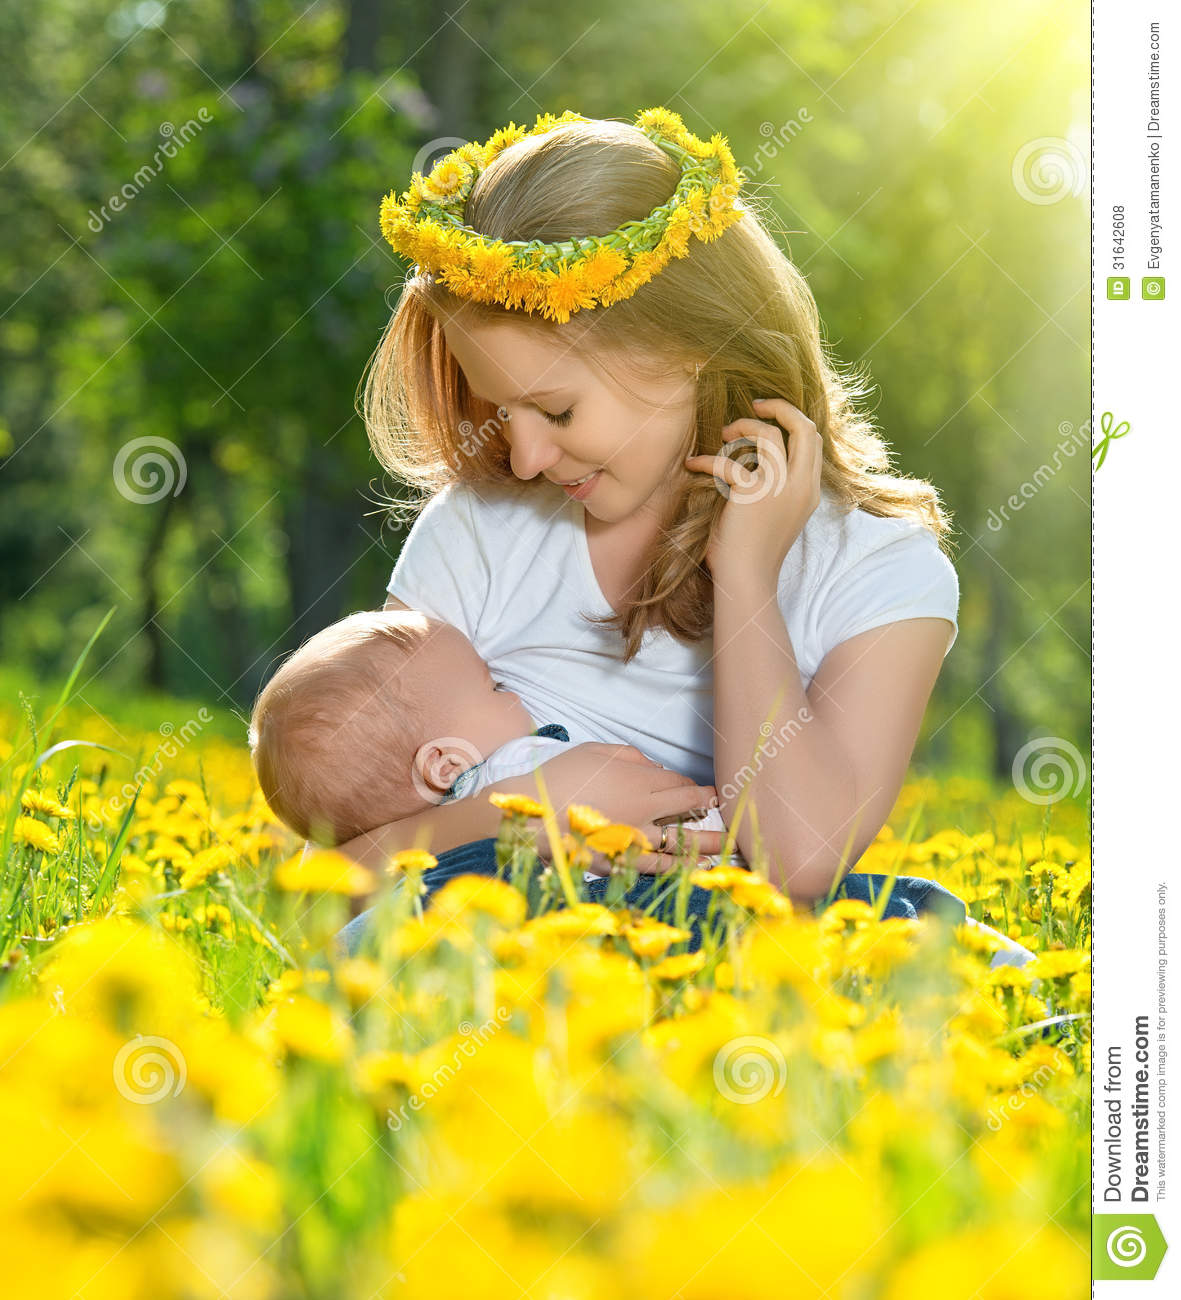 Toddler Kissing Newborn Mother Feeding Her Baby In Nature Green Meadow With Yellow